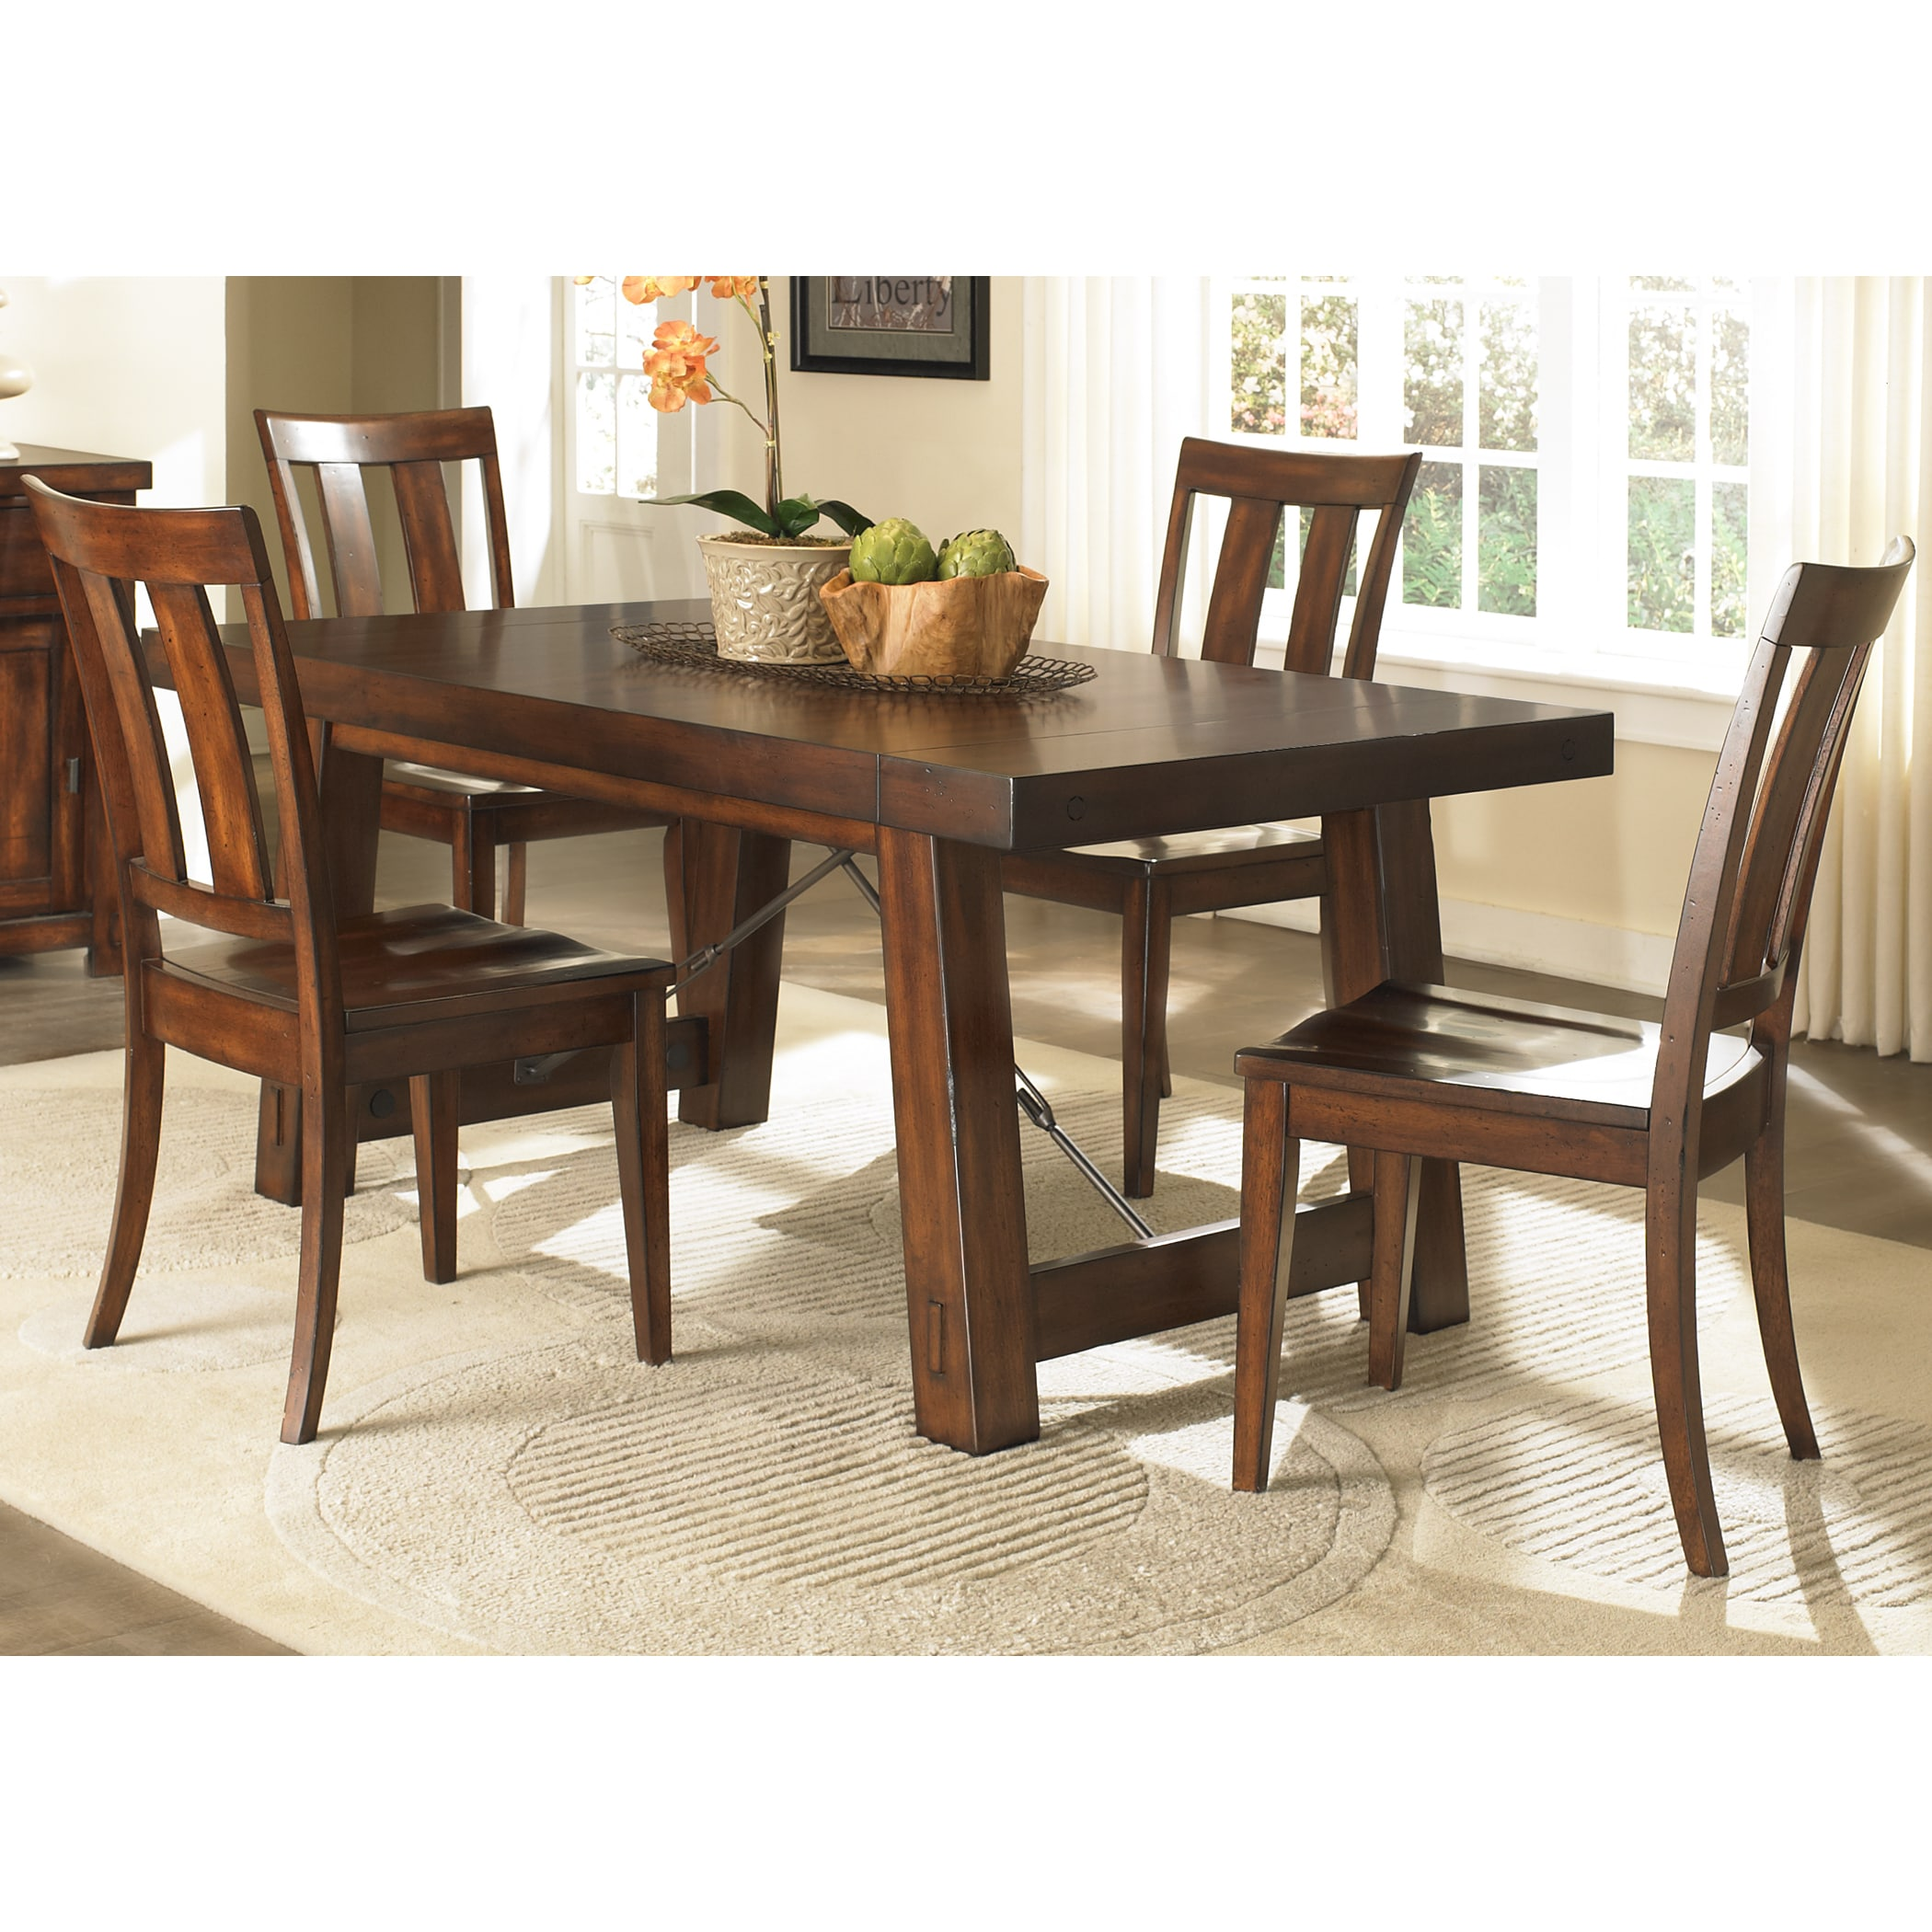 Wonderful Liberty Tahoe Mahogany Trestle Table   Free Shipping Today   Overstock    17725326